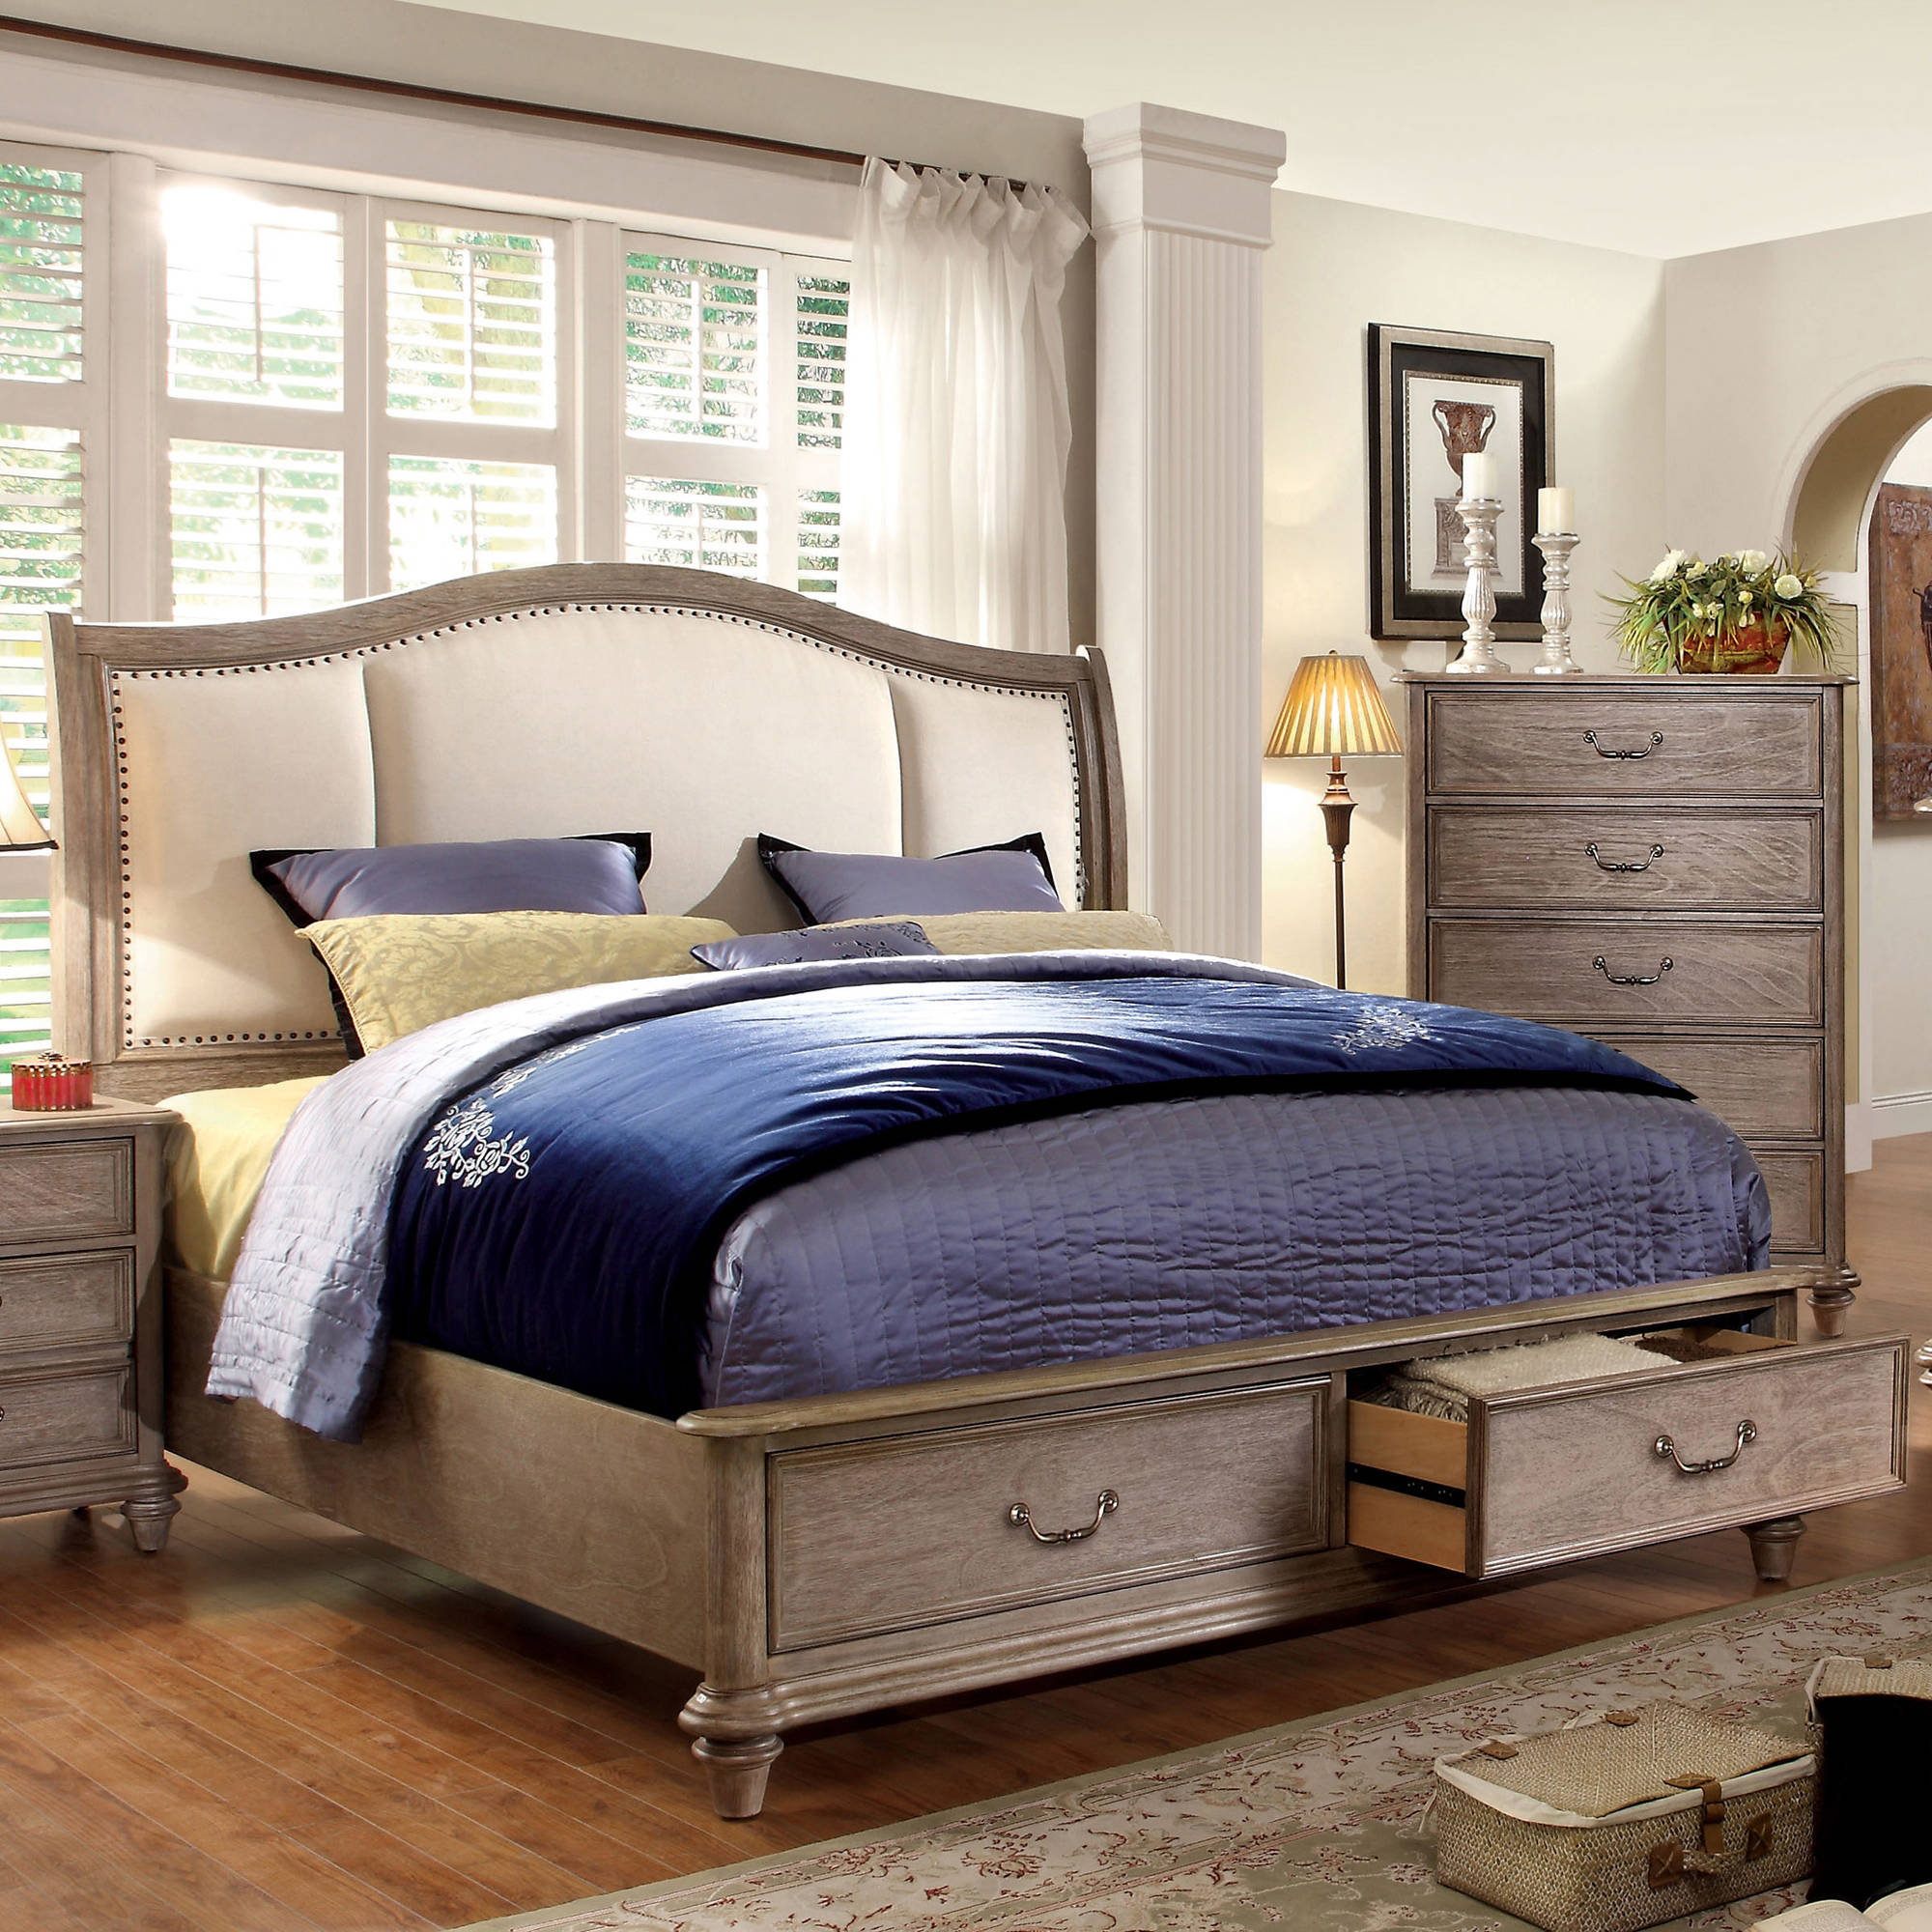 Furniture of America Vinita IV California King Bed With Storage, Natural Tone